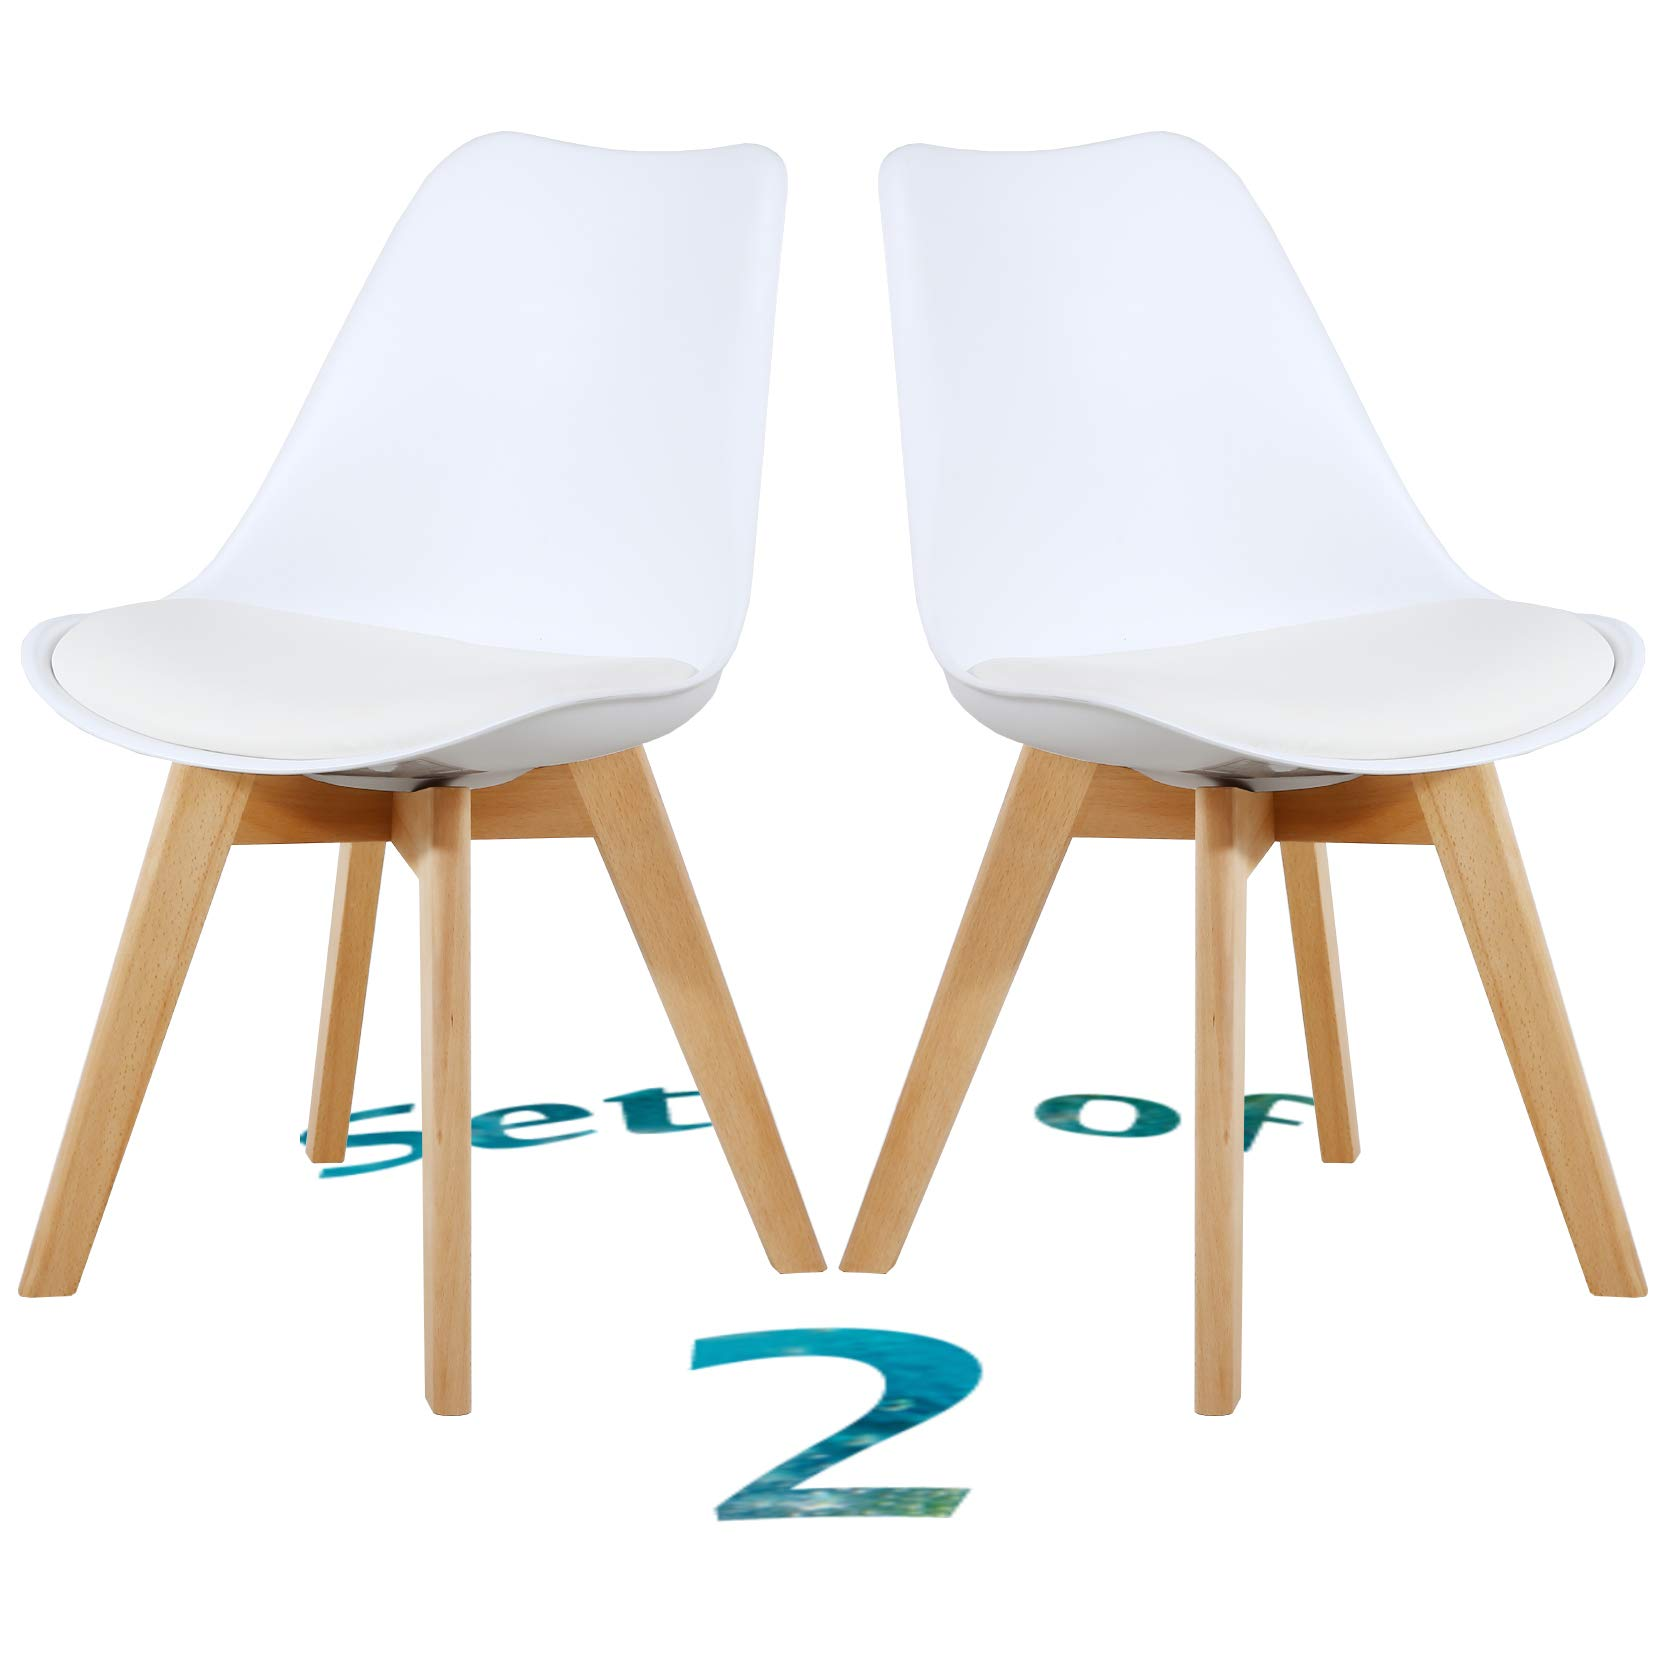 Set of 2 Eames Style Chair Dining Chairs, Shell Lounge Plastic Chair with Natural Wood Legs (White)